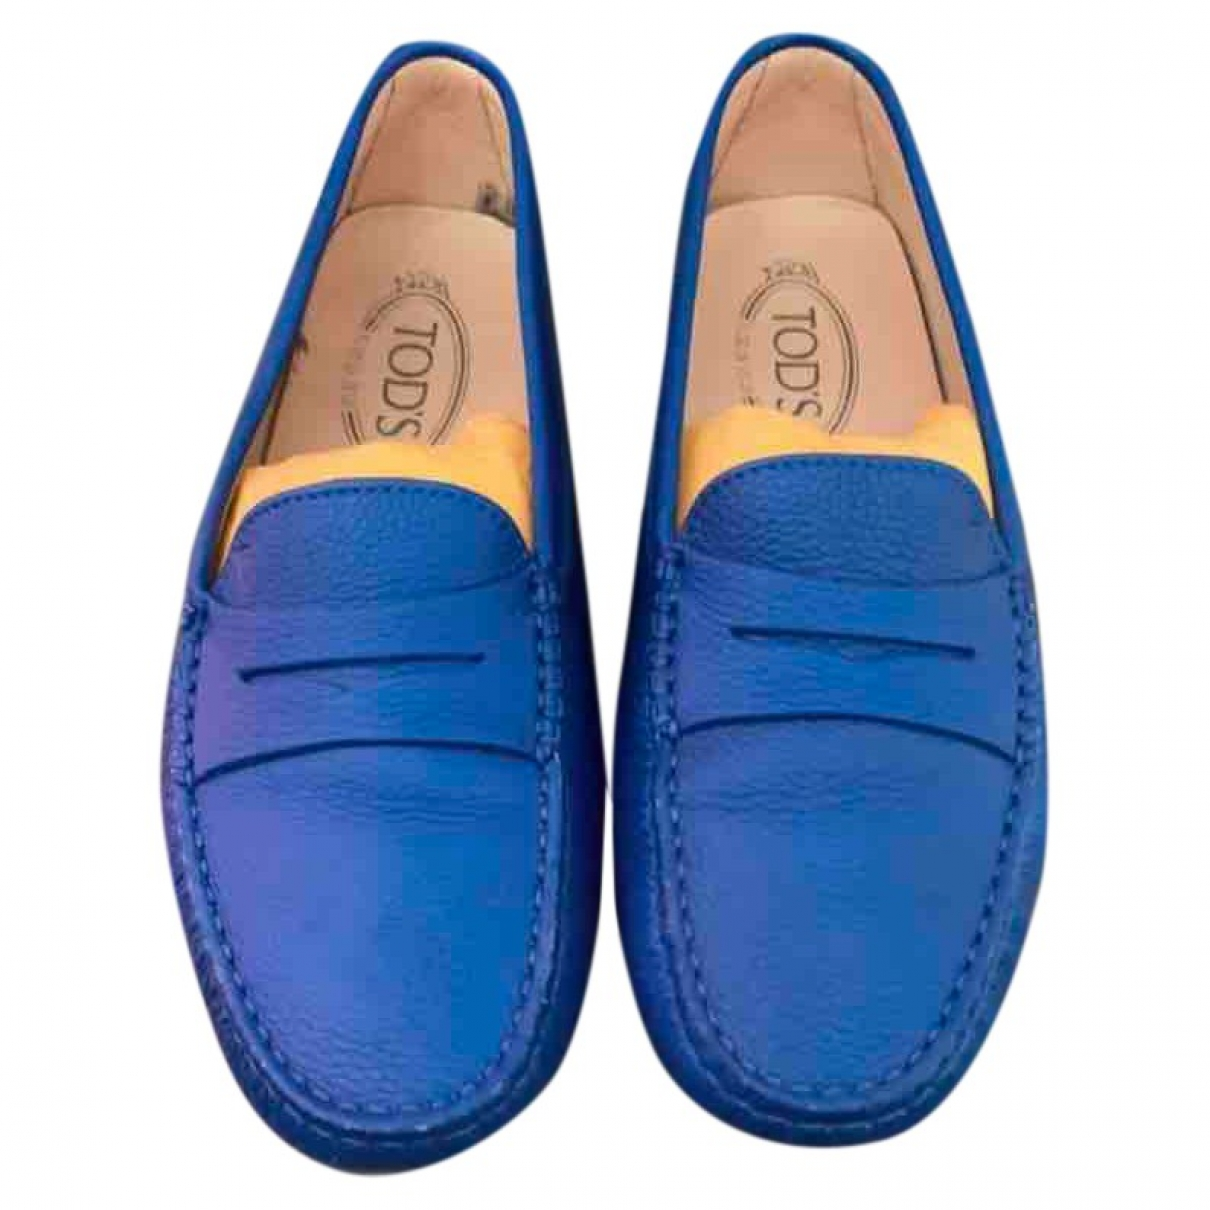 Tod's Gommino Blue Leather Flats for Women 38 EU